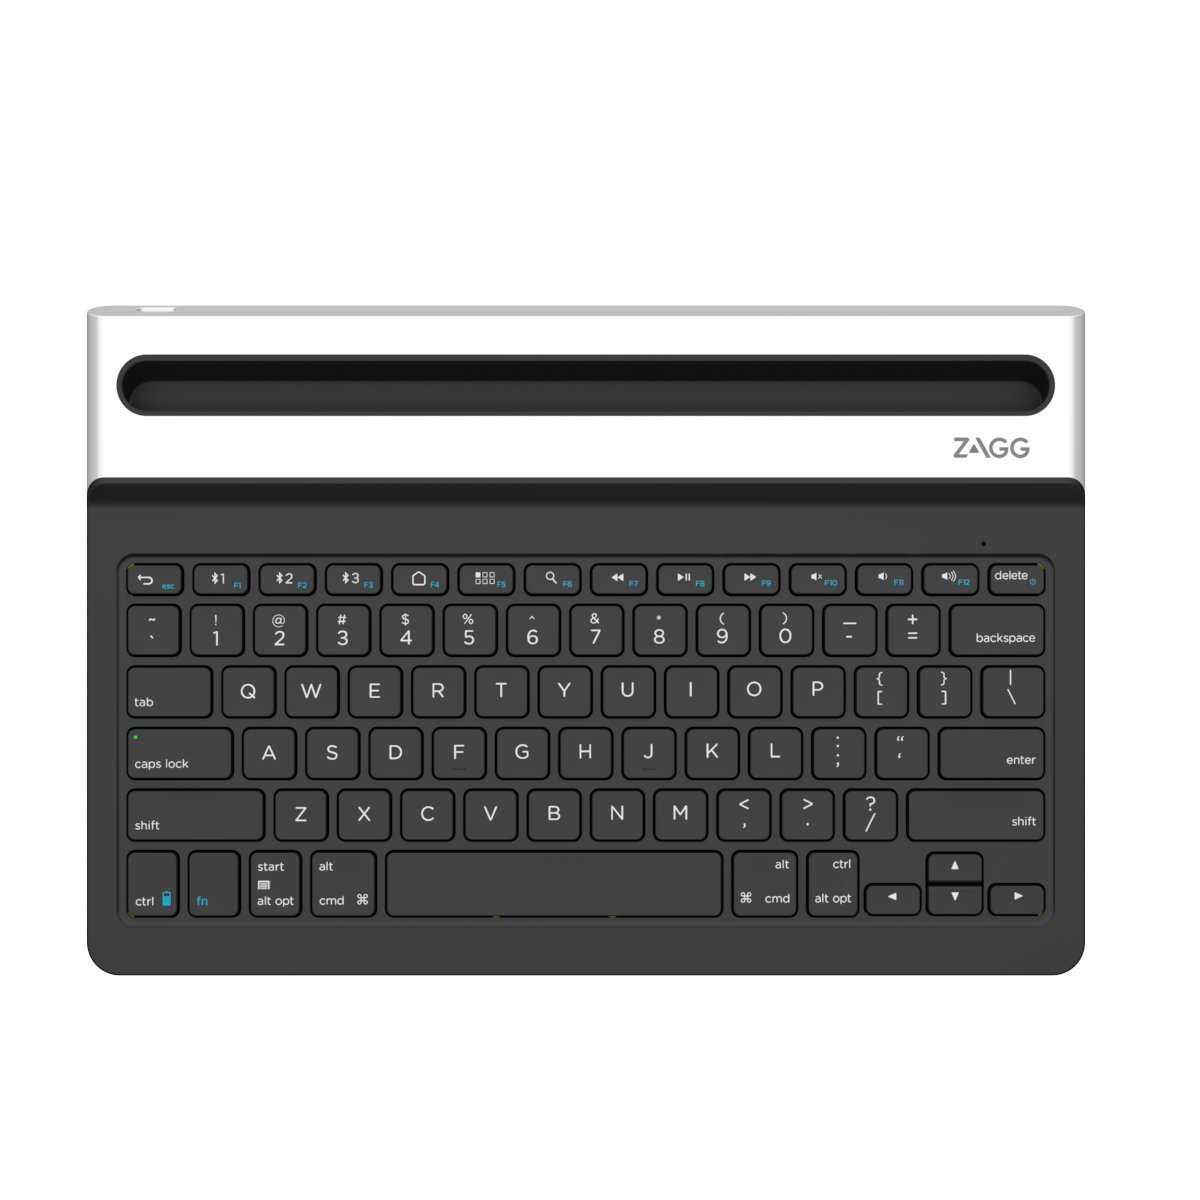 ZAGG Limitless, Full-Size Universal Bluetooth Keyboard for Apple, Windows, Android and other Bluetooth enabled devices - Black